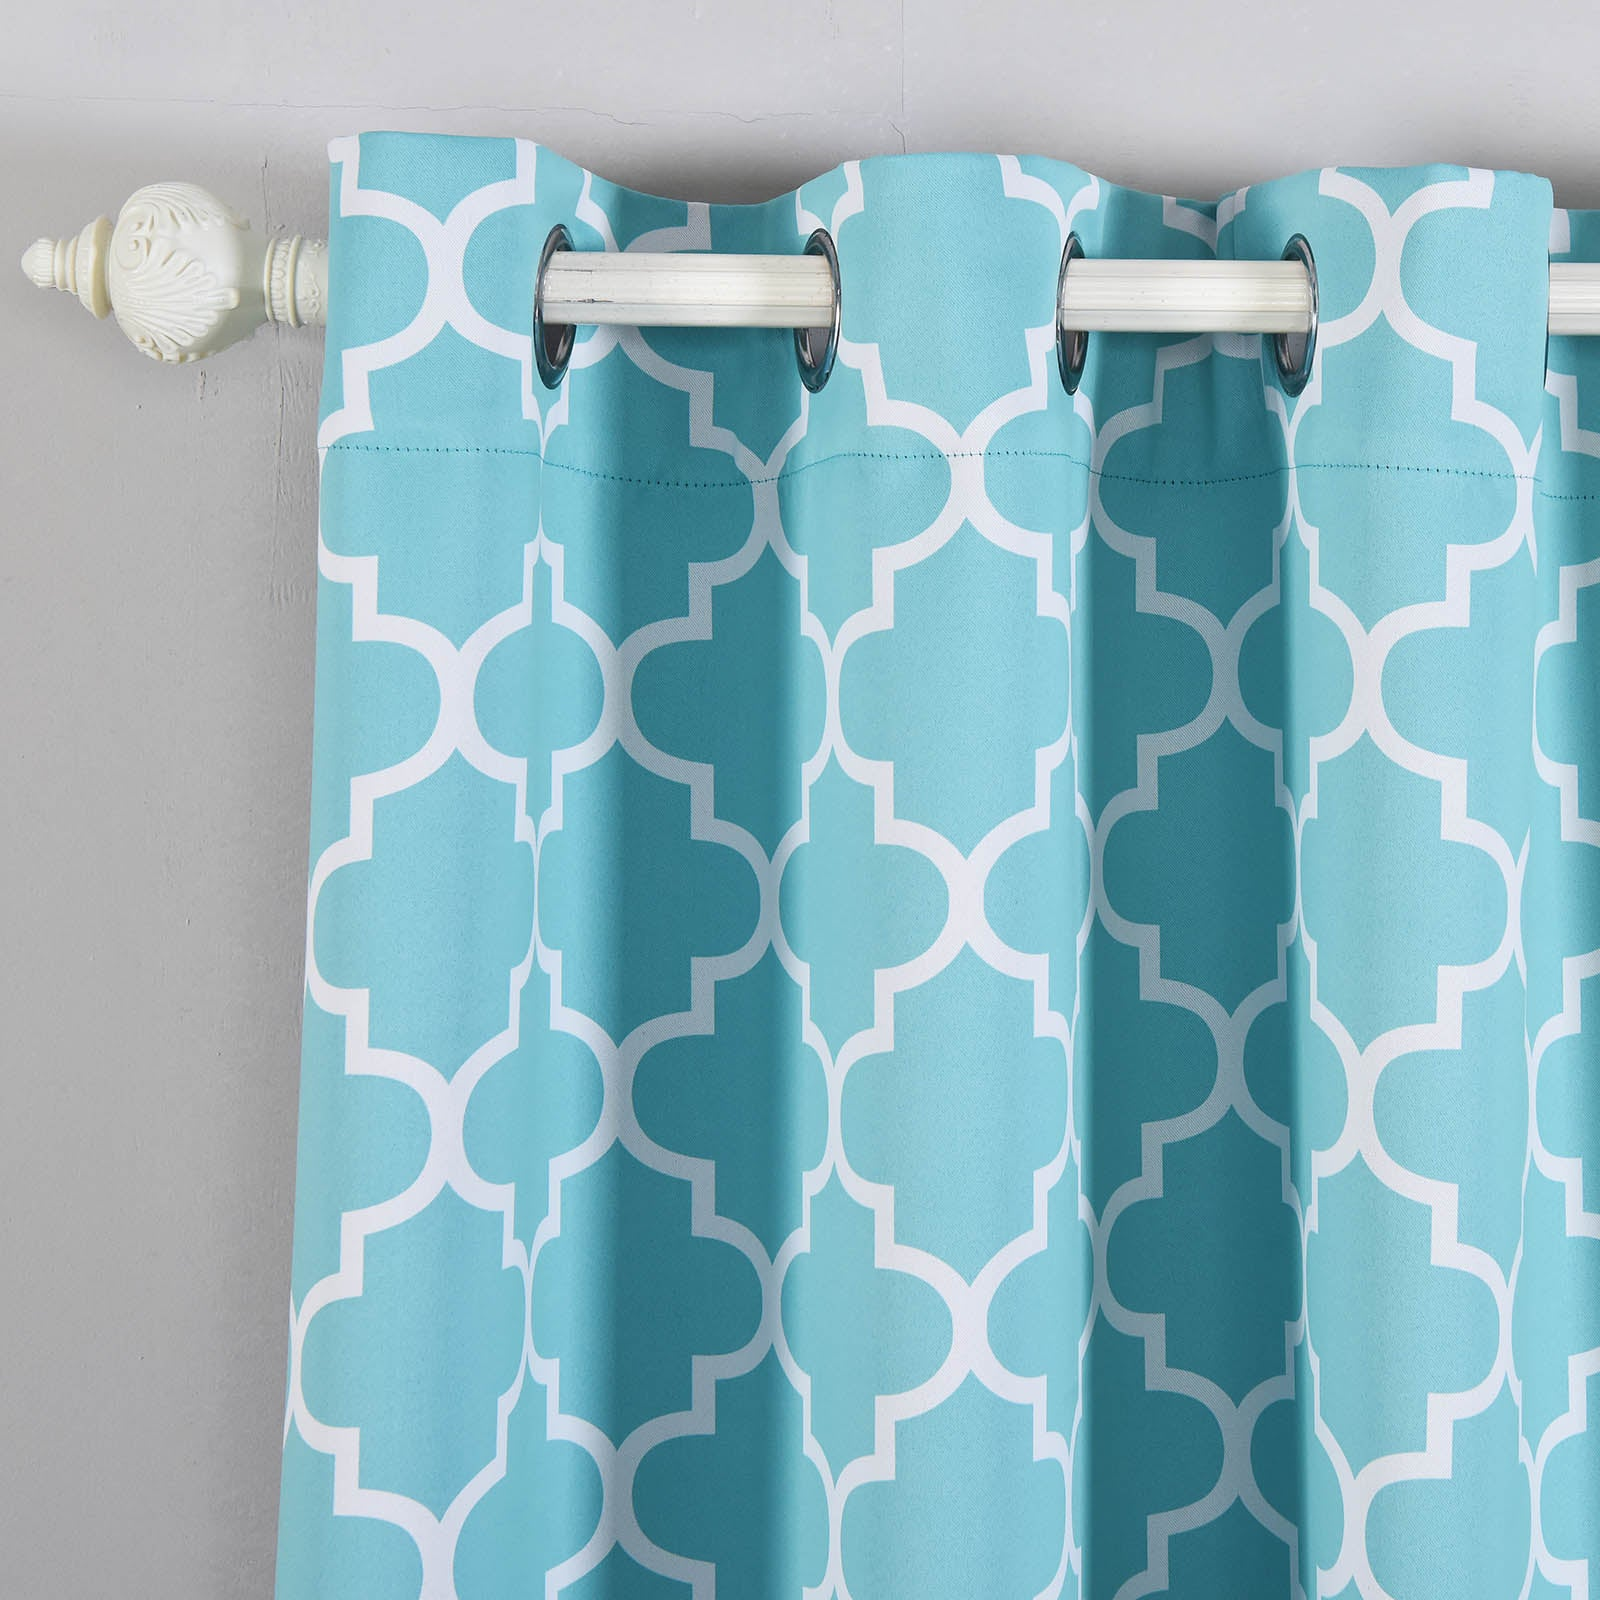 Blackout Curtains Lattice Print 52x96 White Turquoise Pack Of 2 Thermal Insulated